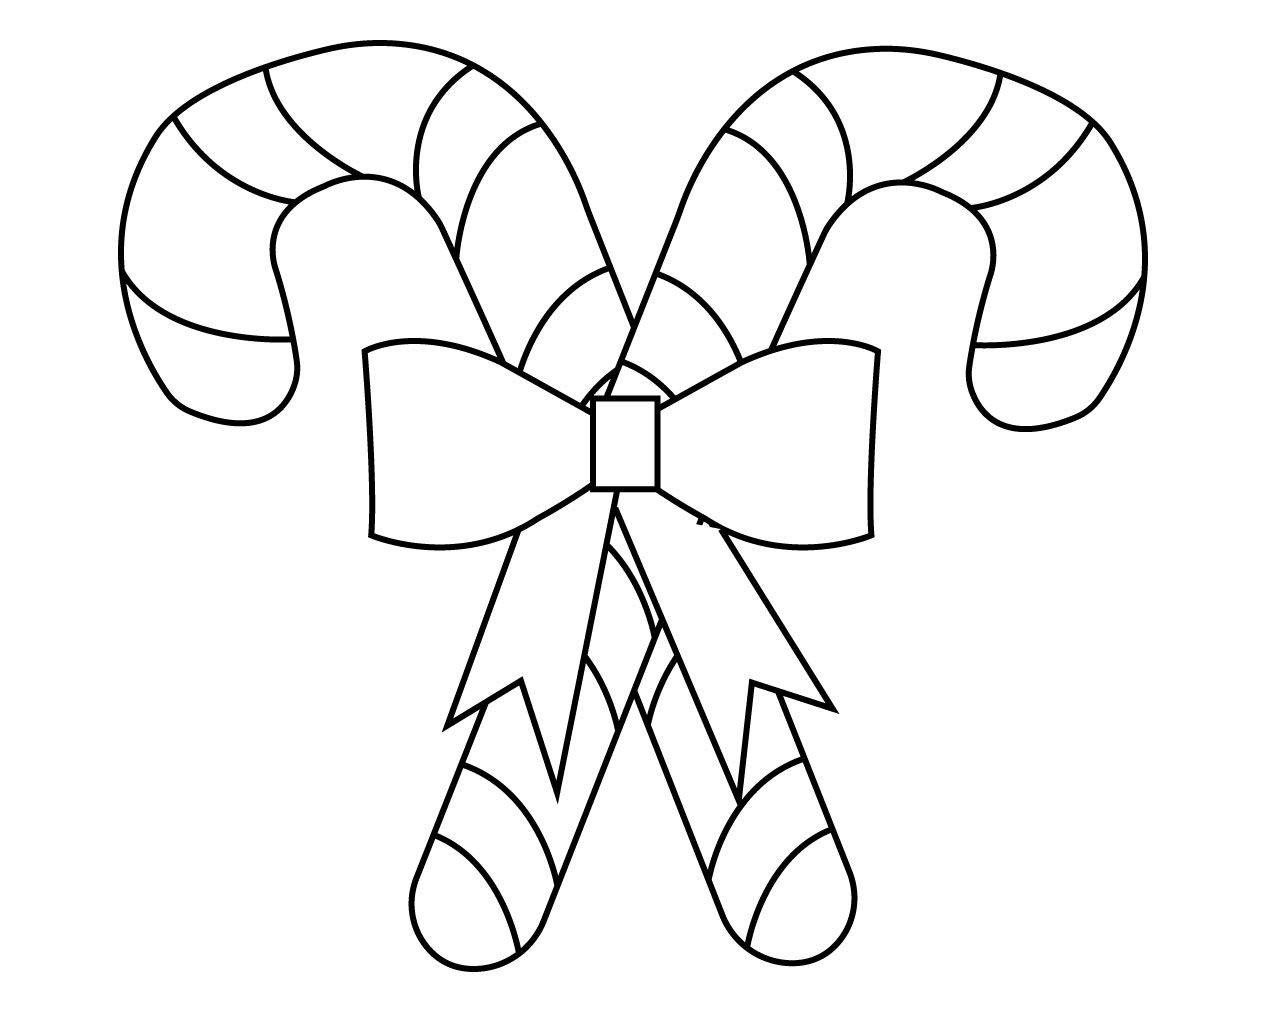 Candy Cane Coloring Pages For Kids Printable